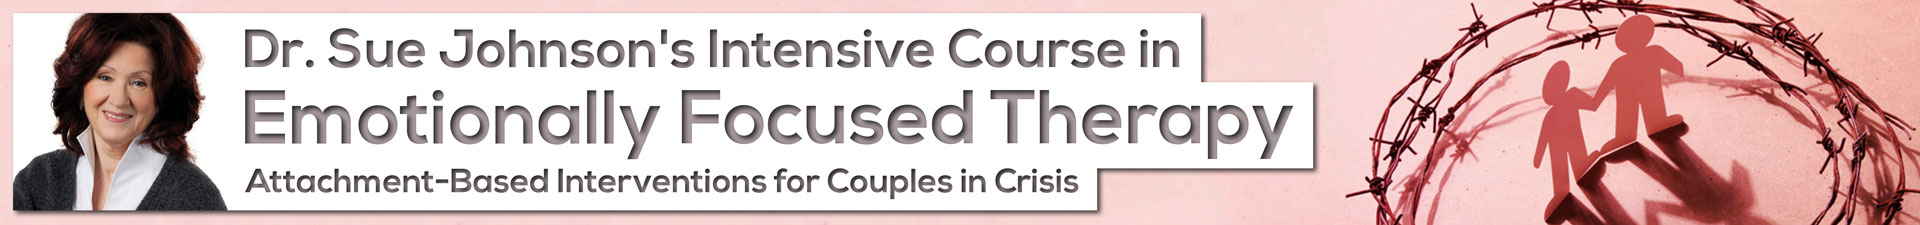 Dr. Sue Johnson's Intensive Course in Emotionally Focused Therapy